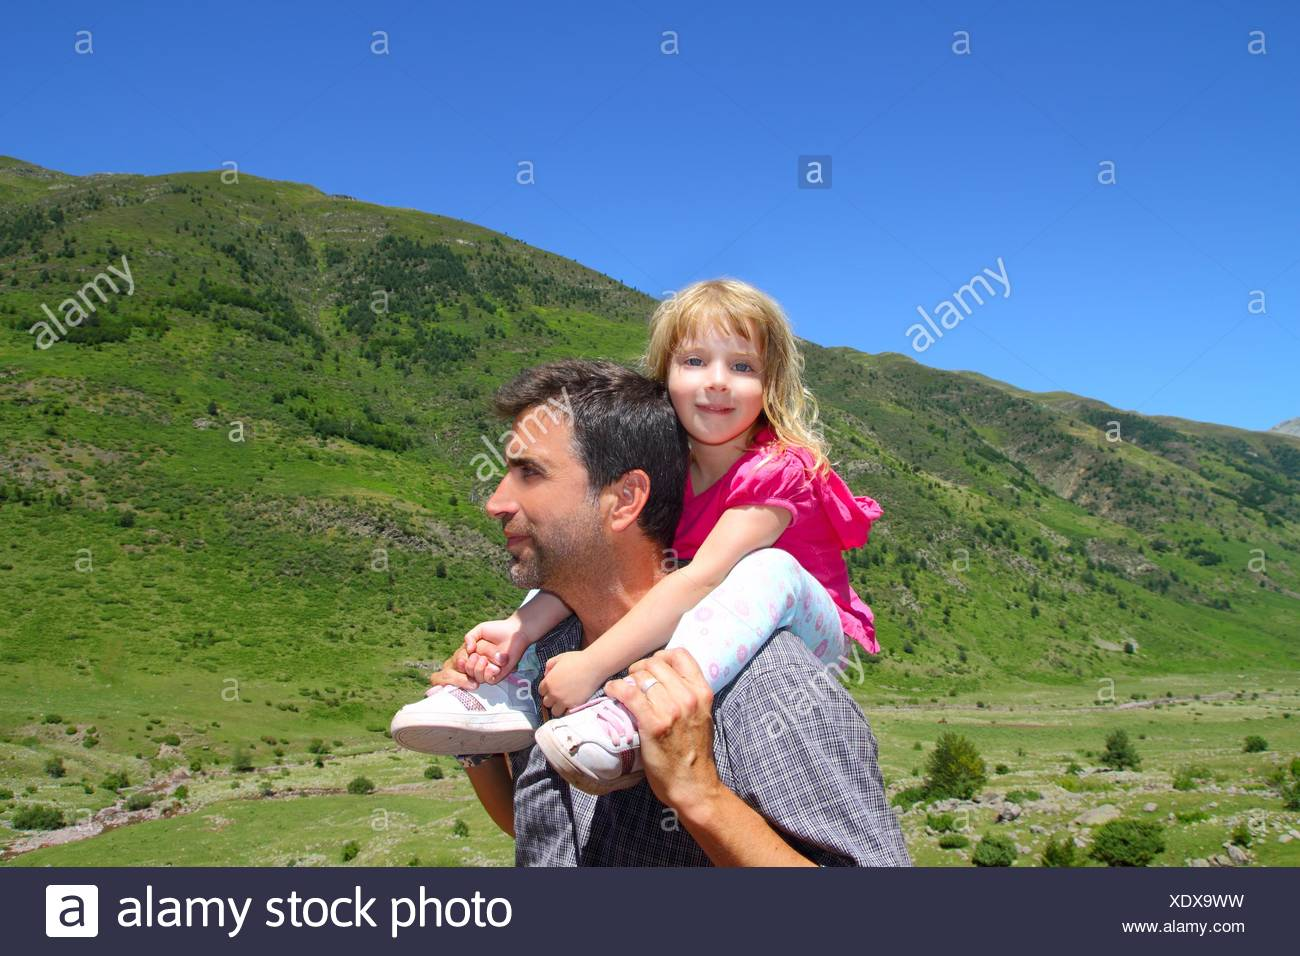 Explorer mountain little girl and father - Stock Image